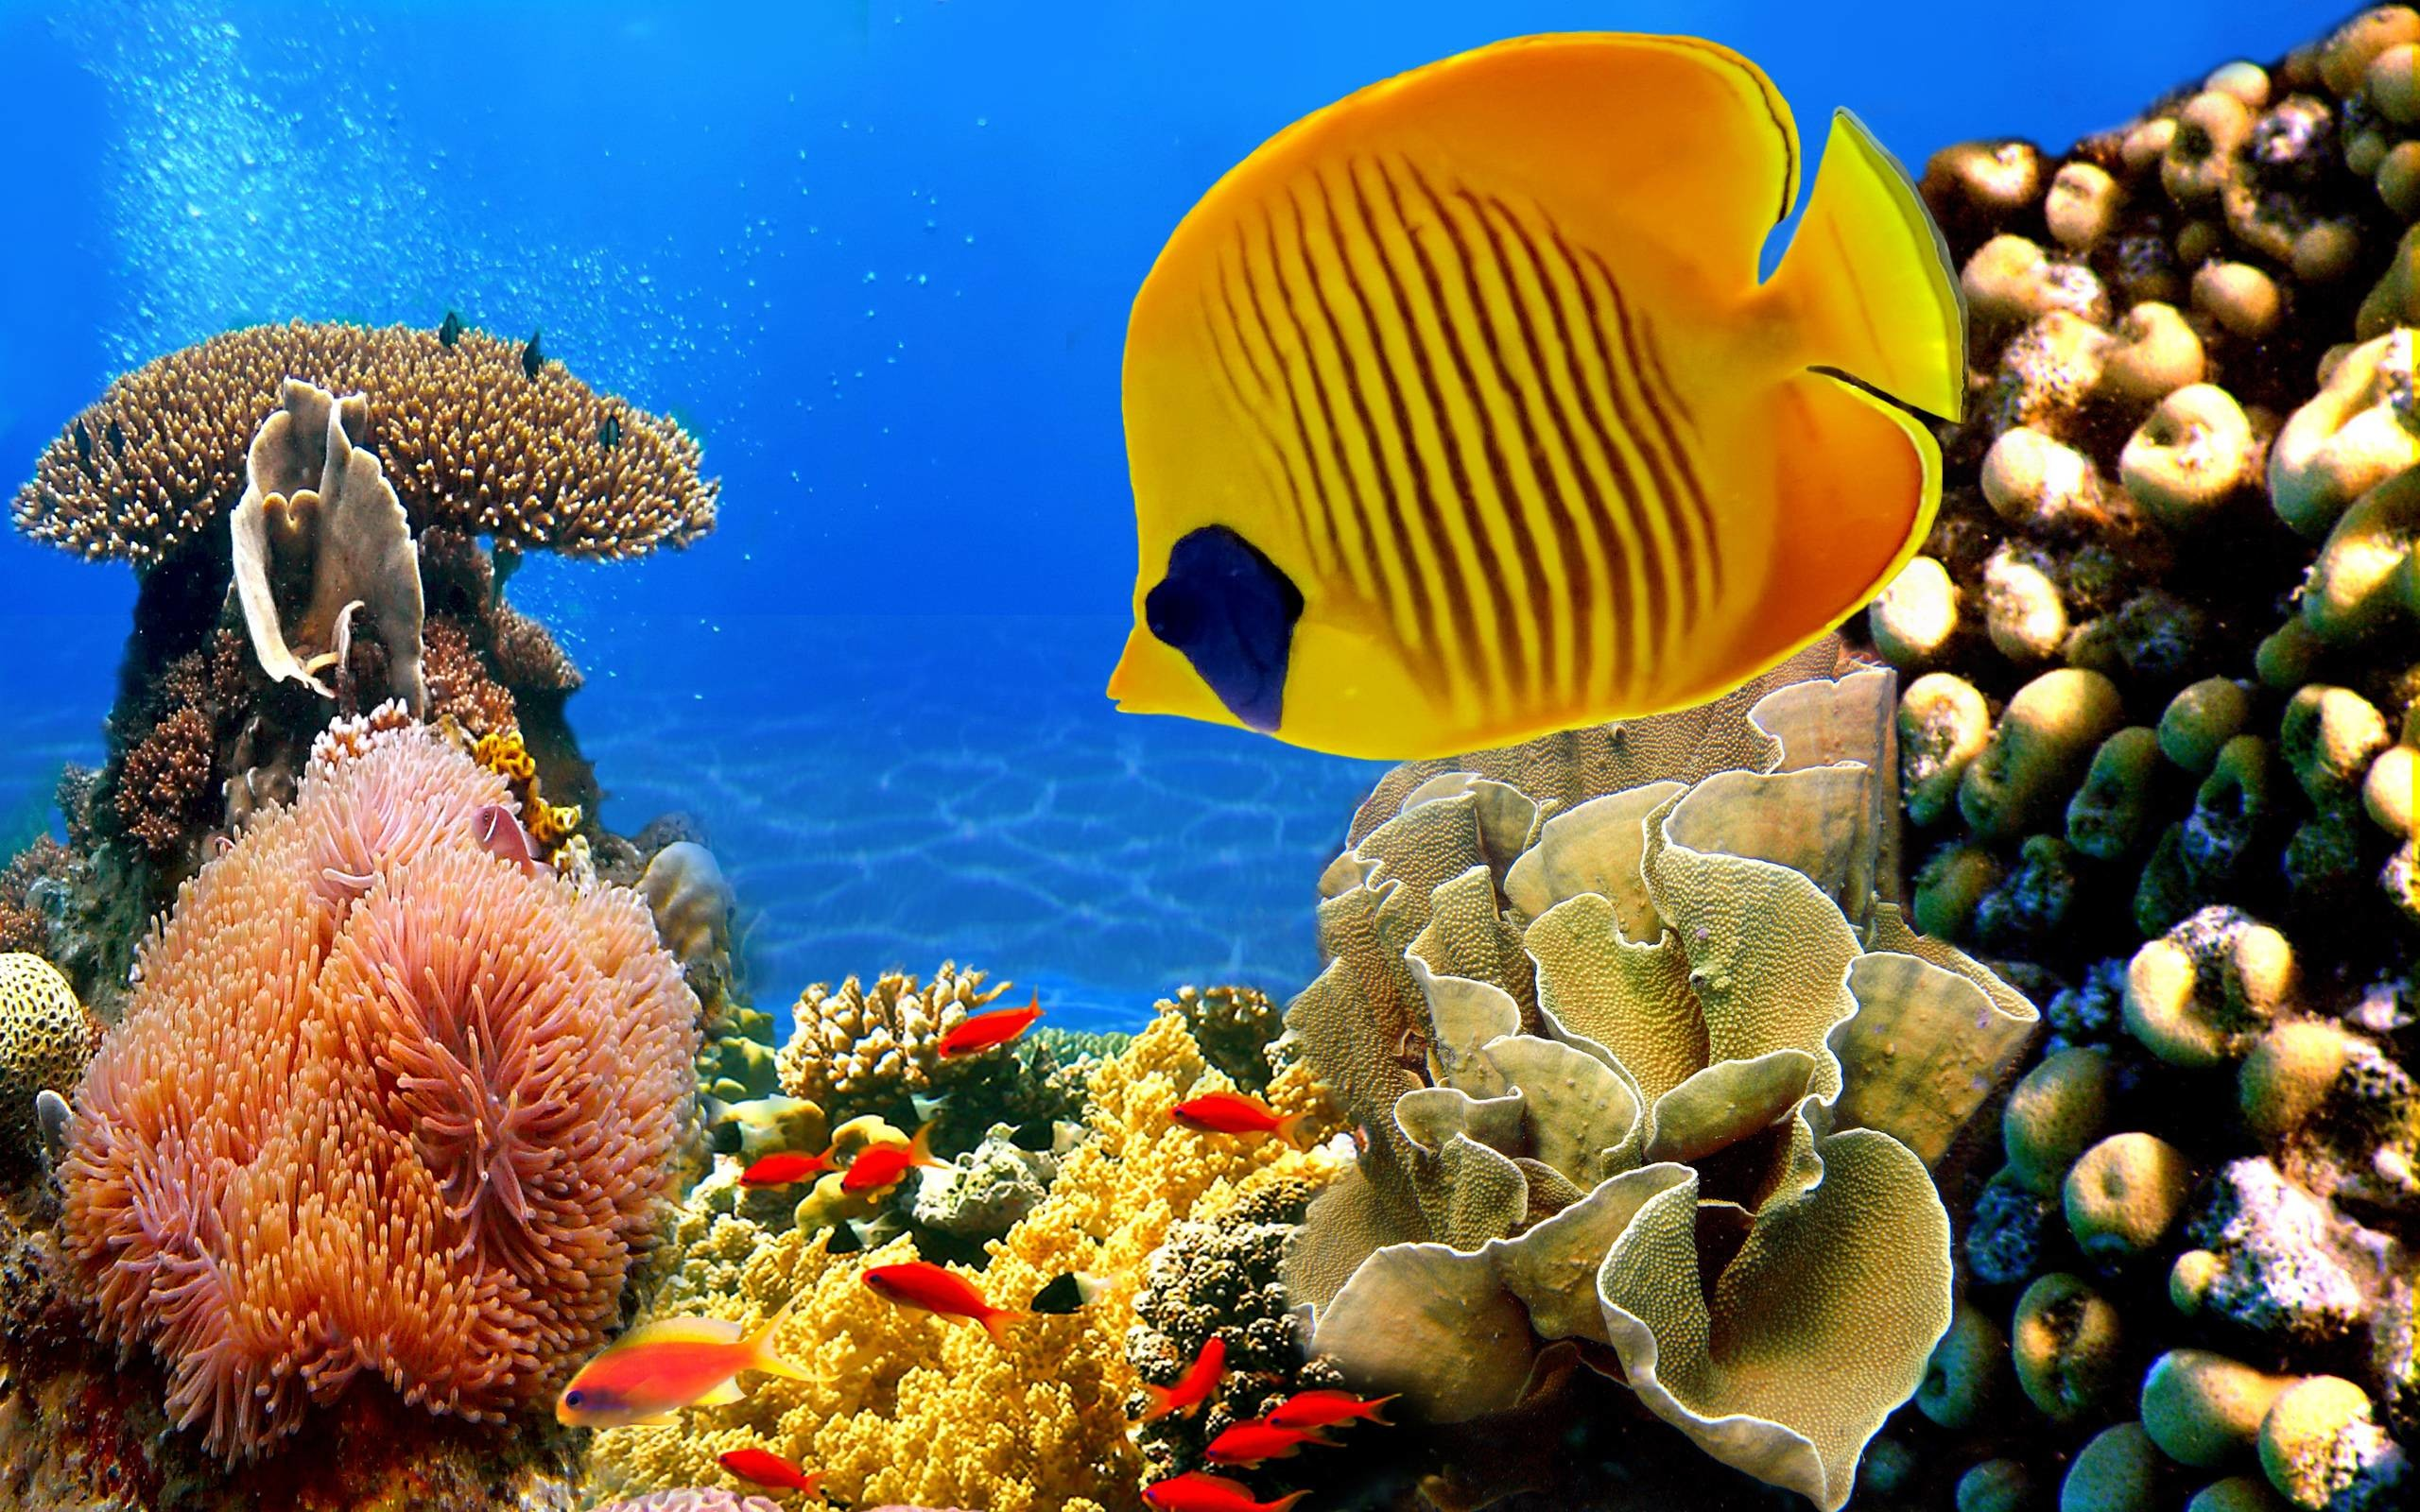 2560x1600 Tropical Fish Wallpapers for Desktop | Free Desk Wallpapers